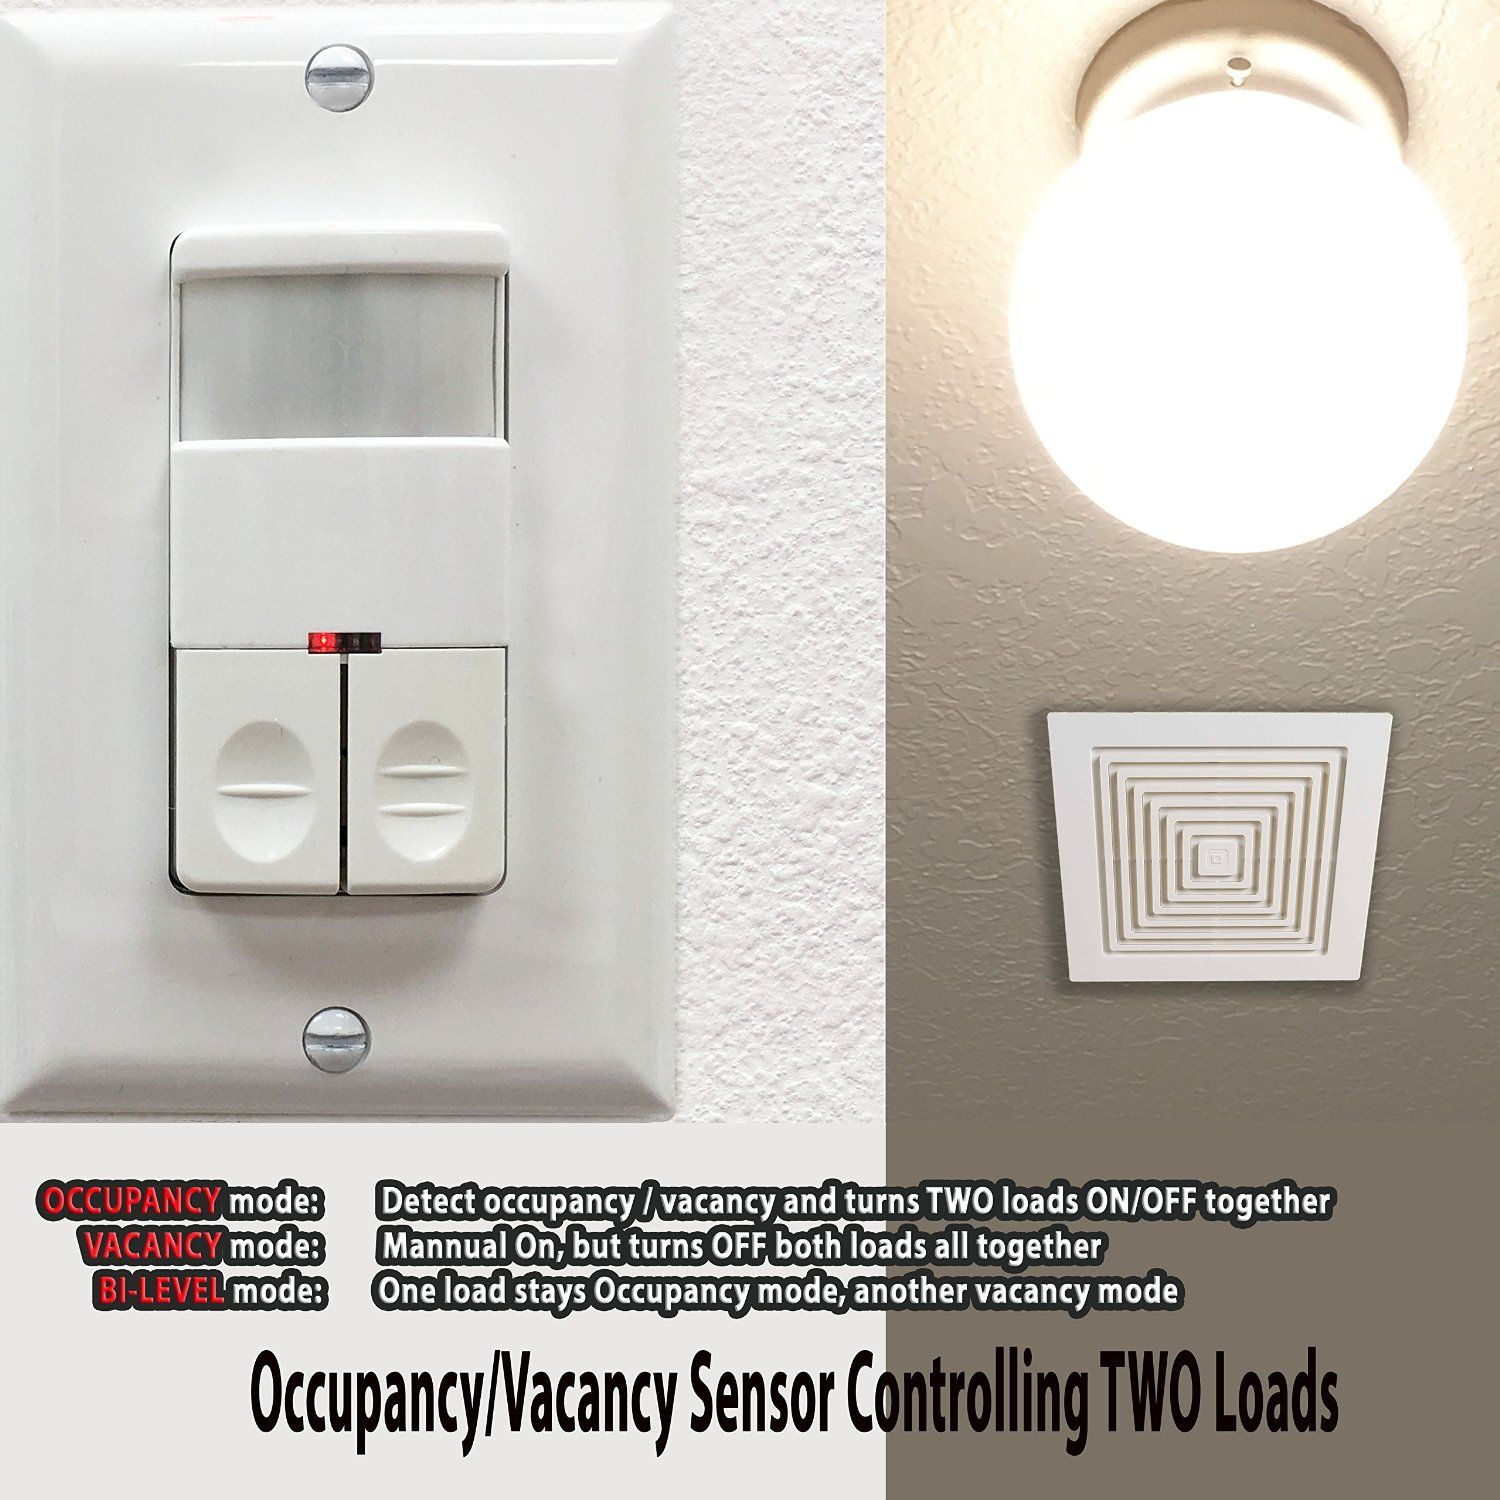 Topgreener tdos8 jd w dual relay load motion sensor switch topgreener tdos8 jd w dual relay load motion sensor switch commercial grade passive mozeypictures Gallery